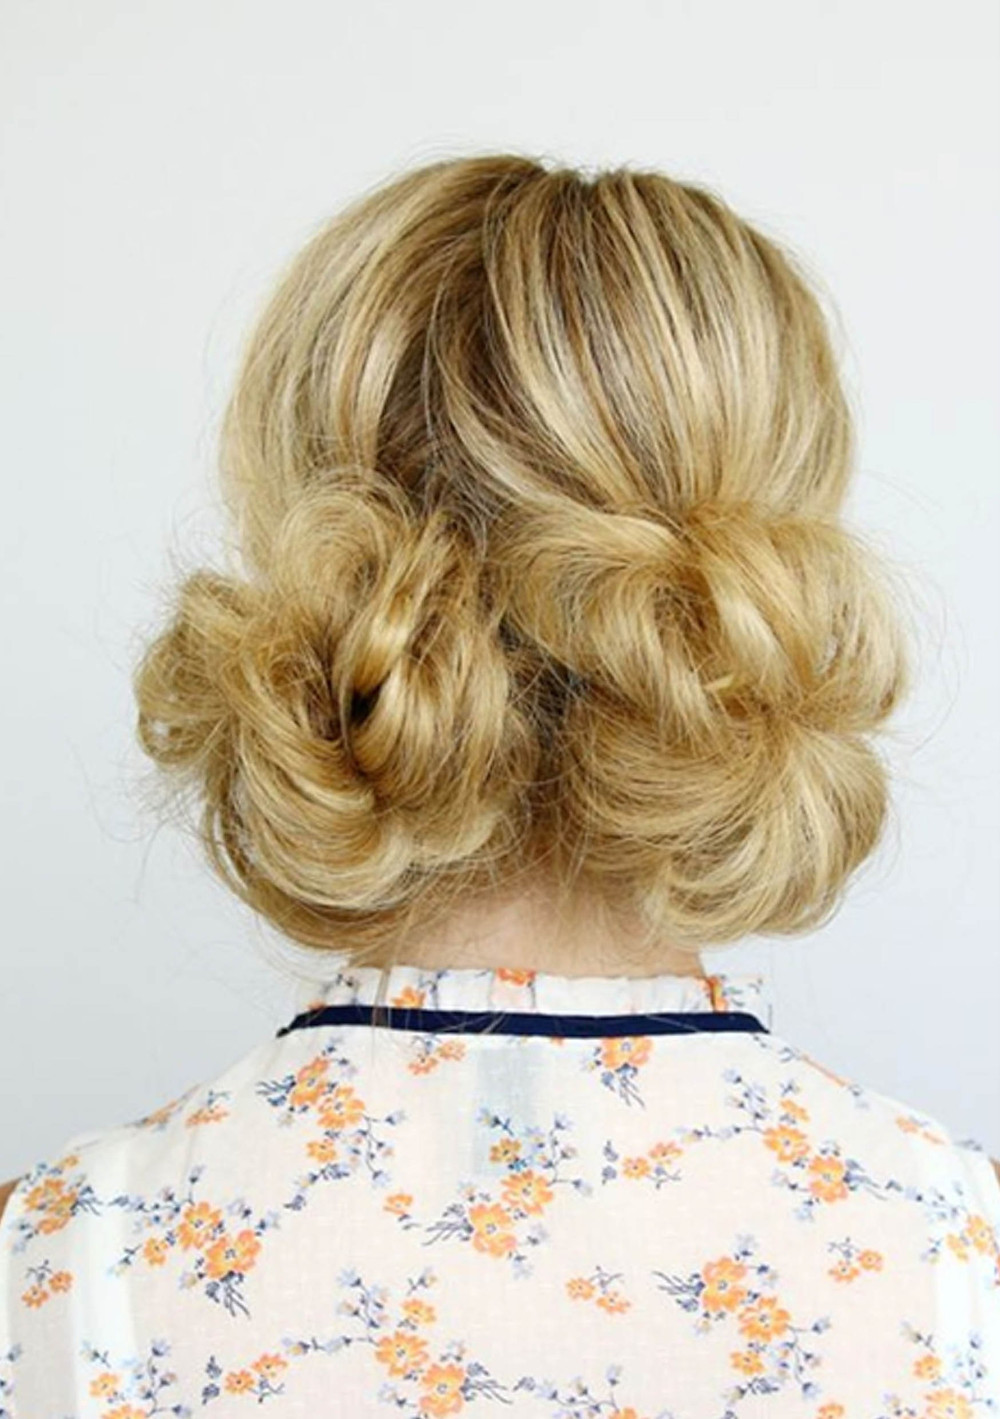 90s double bun hairstyle